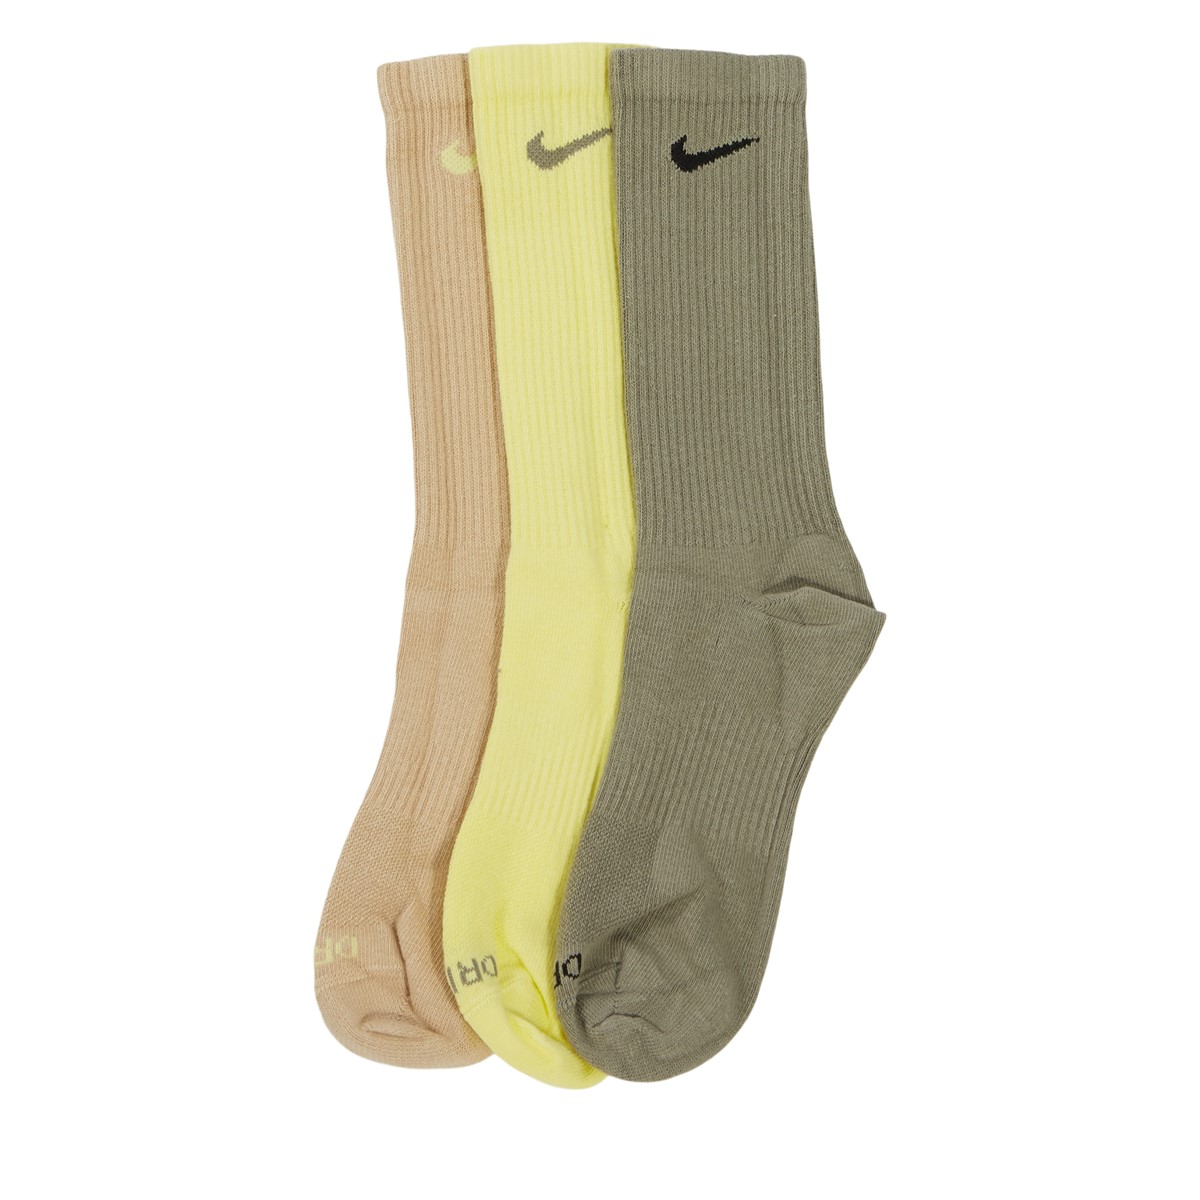 Everyday Plus Lightweight Multi Crew Socks